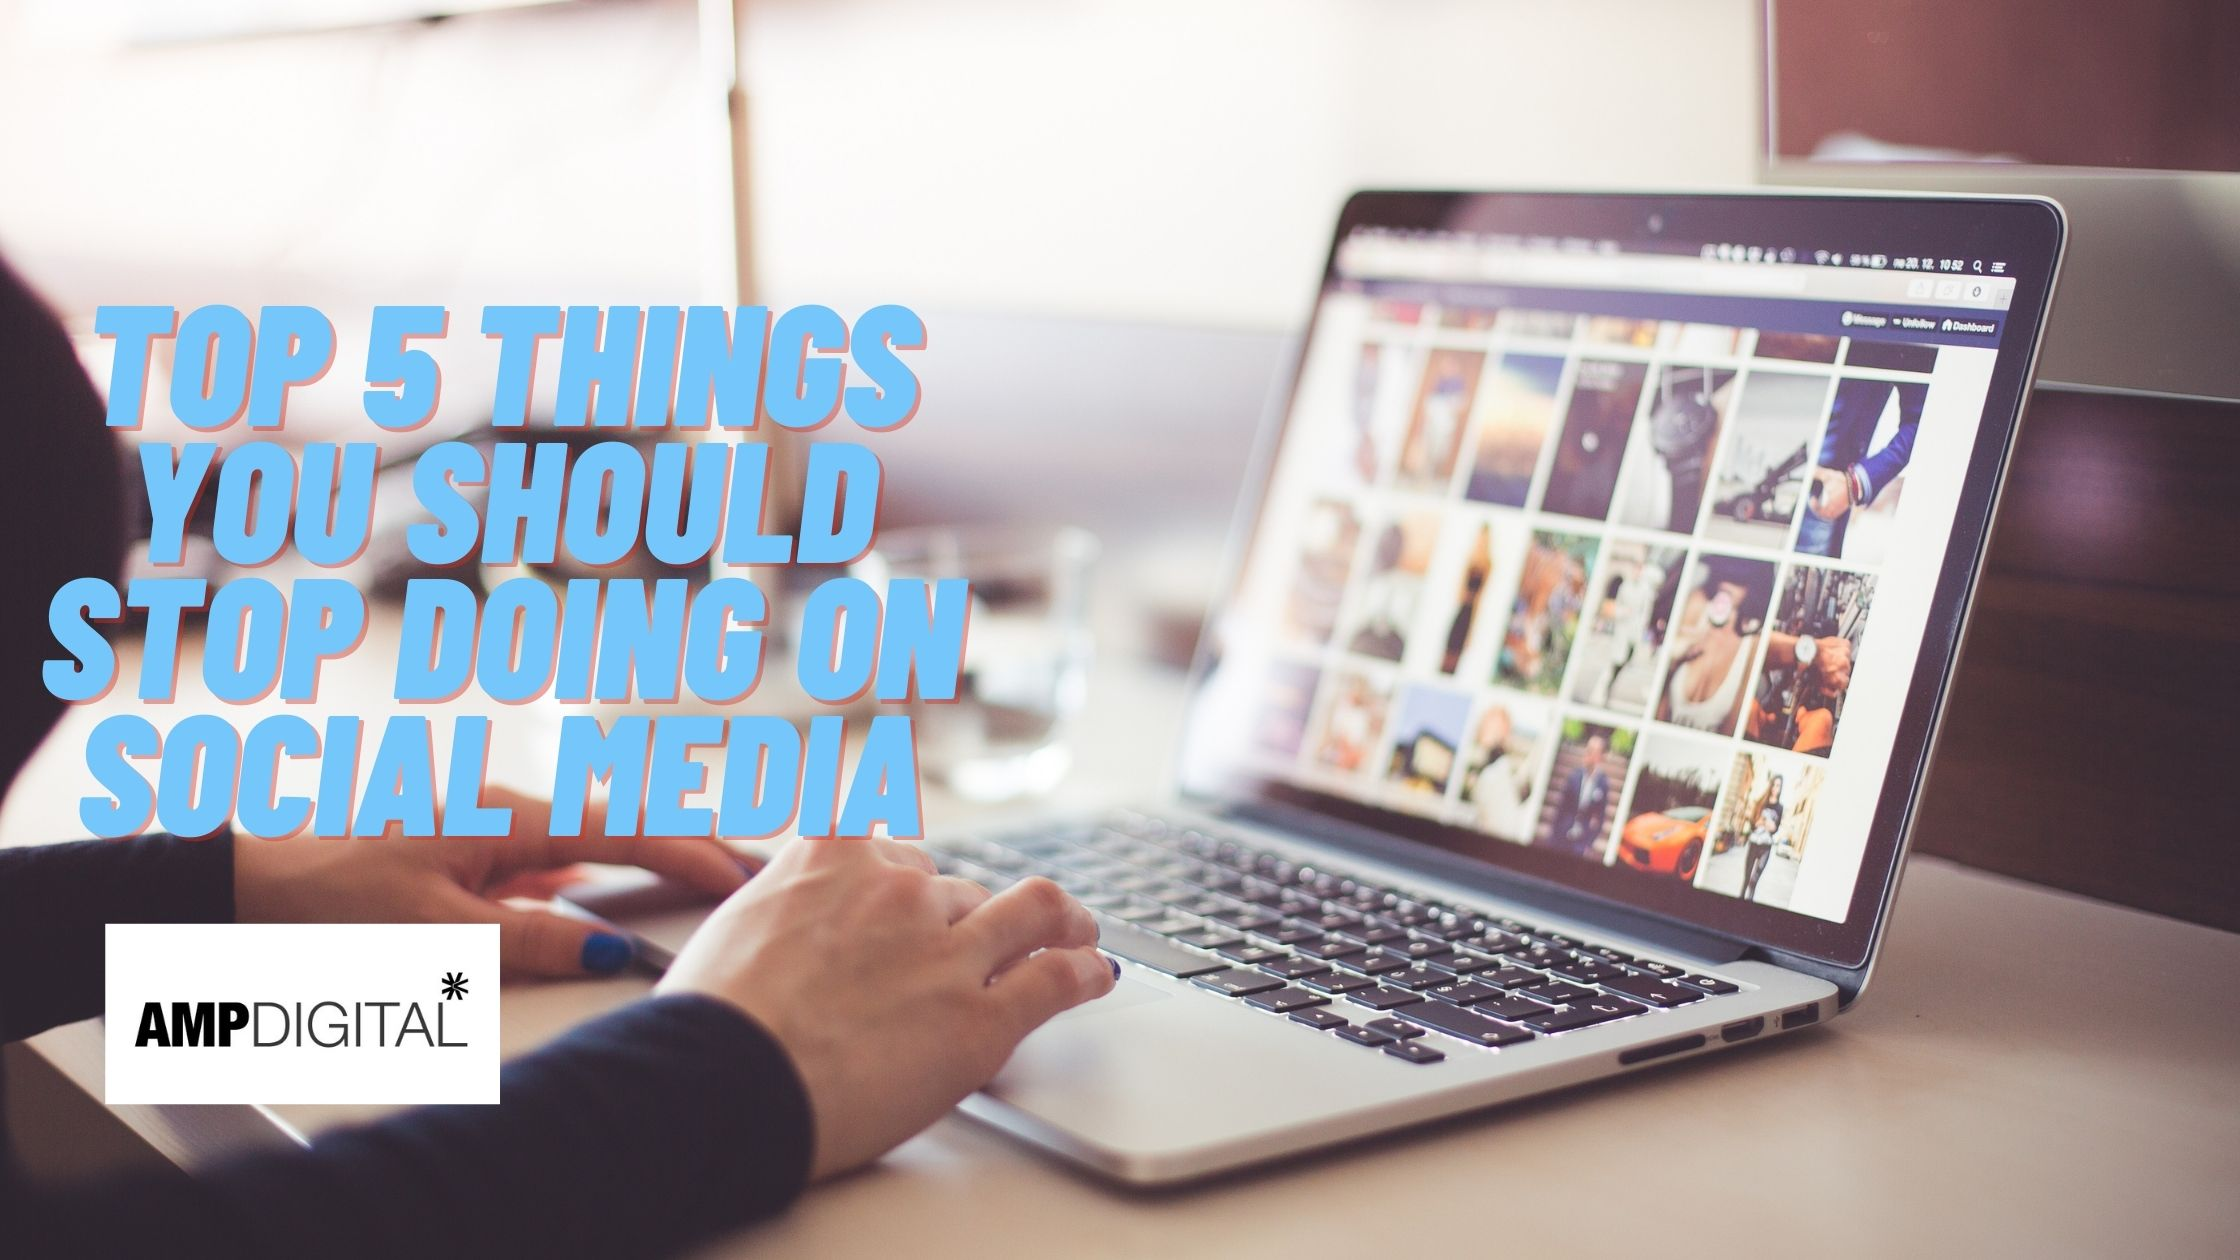 Top 5 Things You Should STOP Doing On Social Media